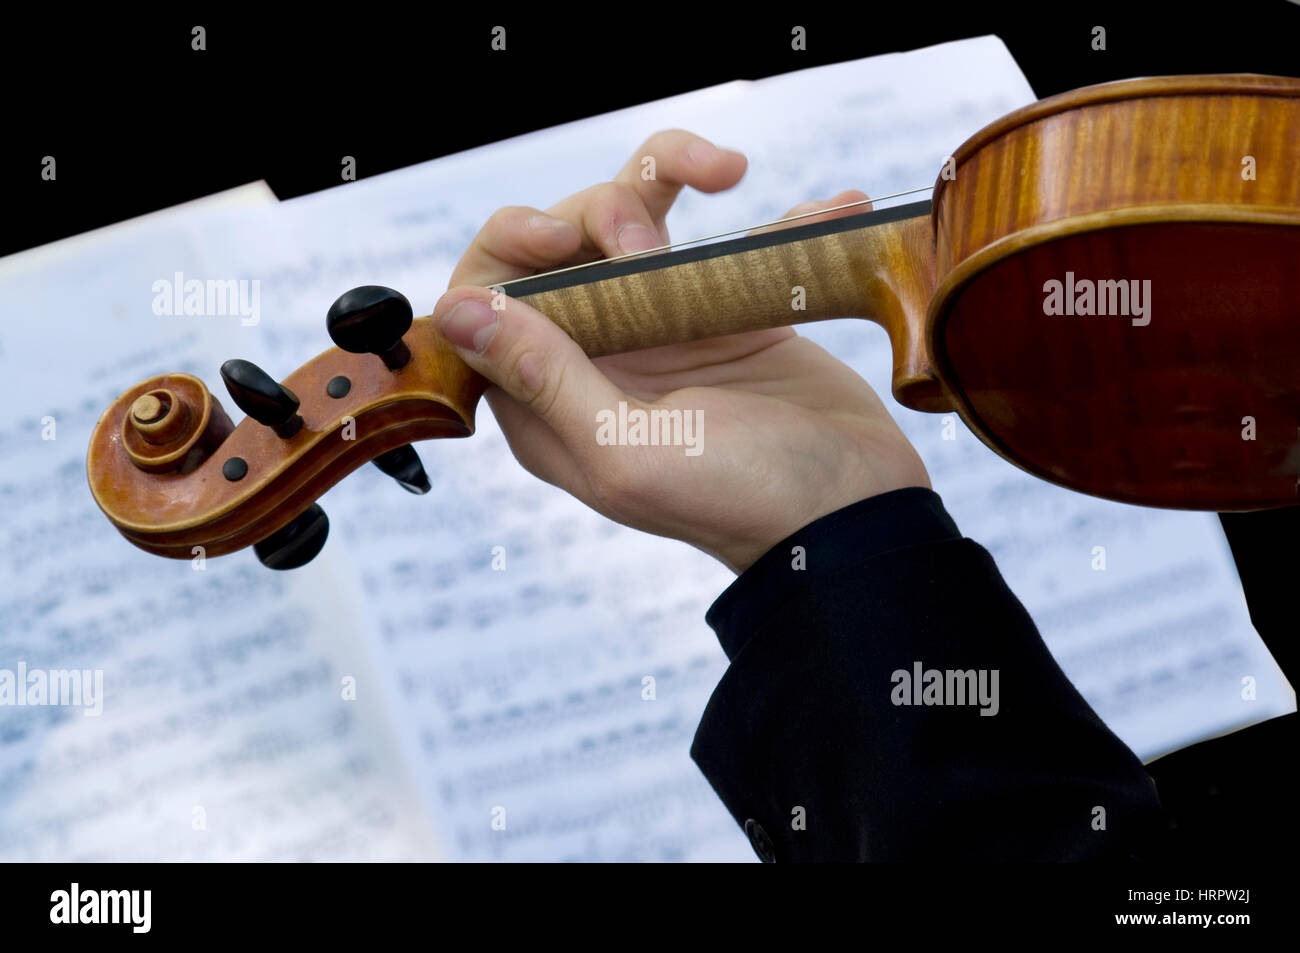 Play the violin according to the score - Stock Image